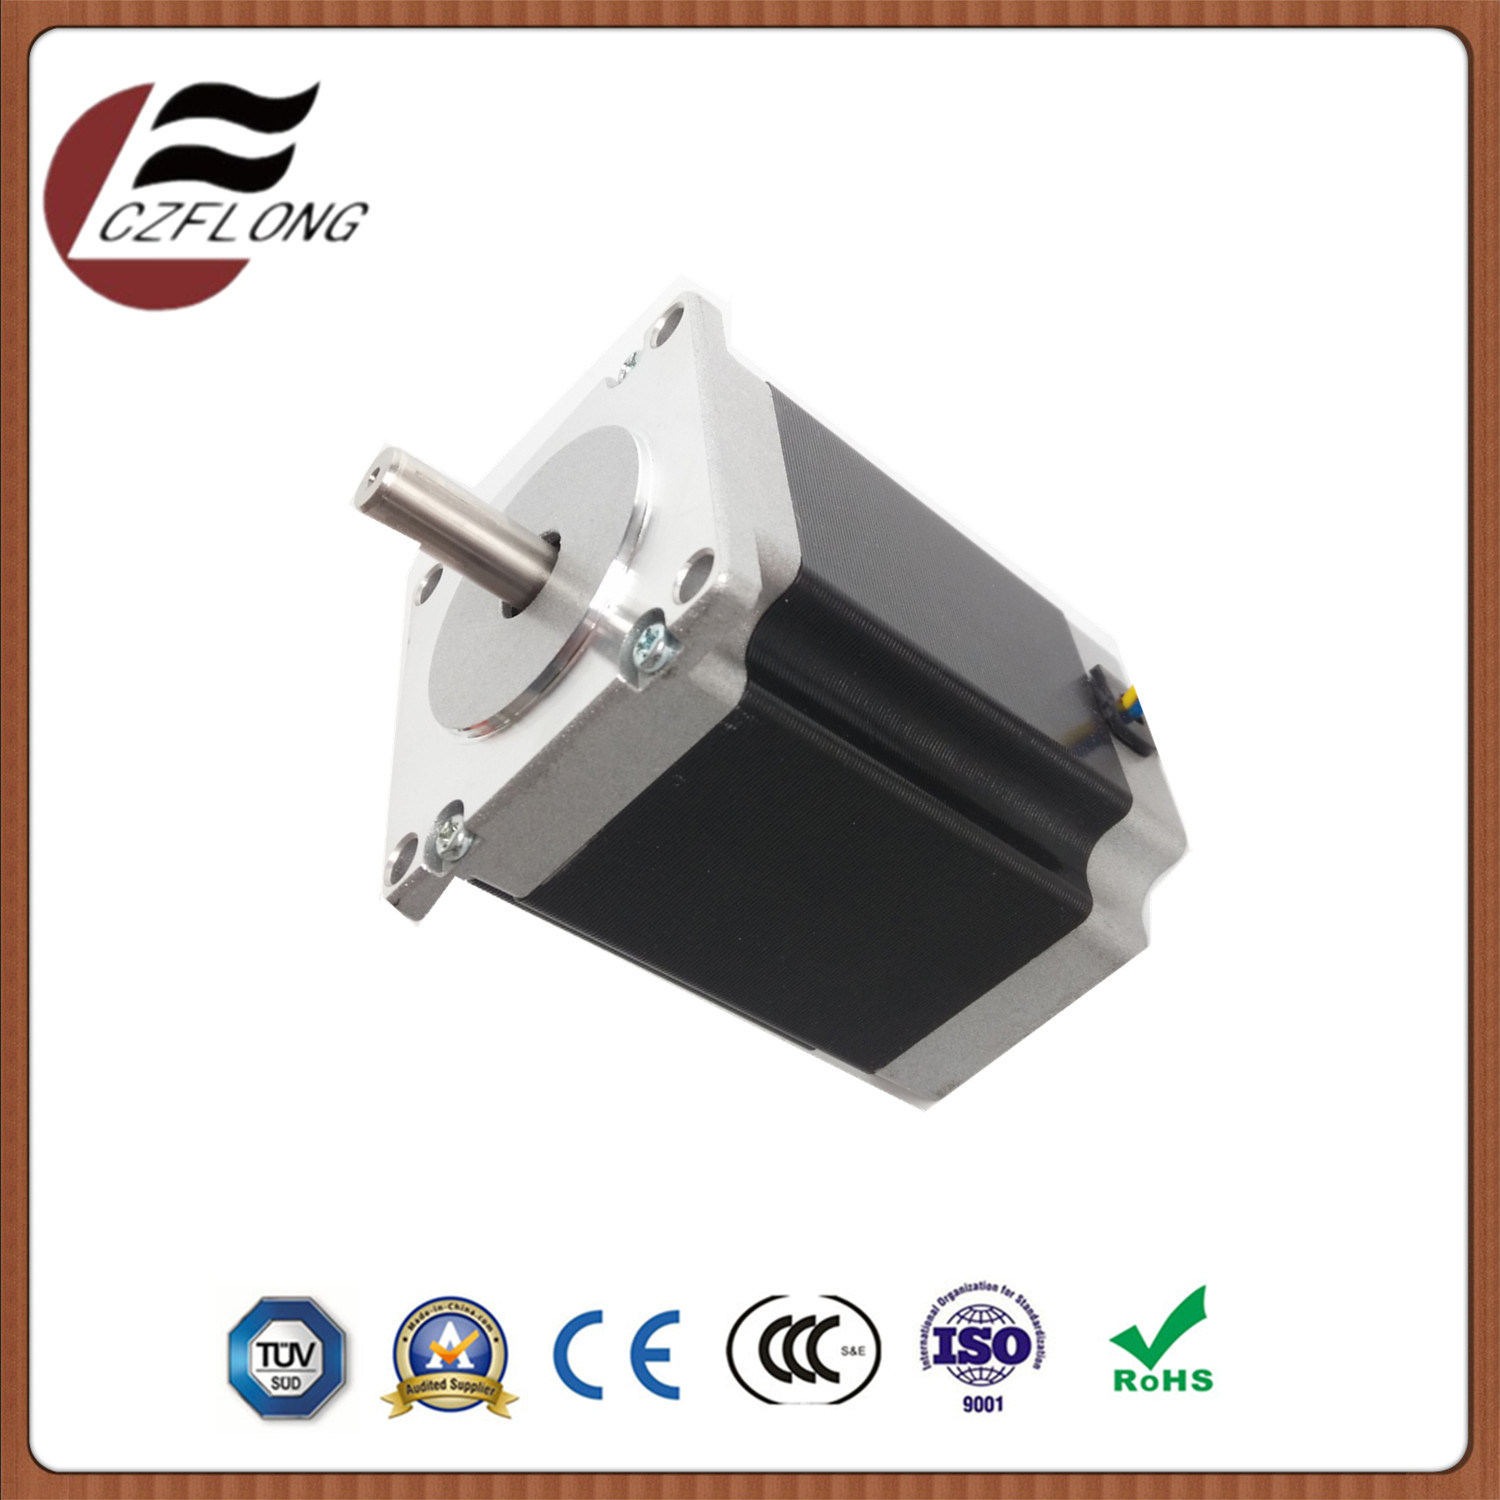 Highly Integrated 57*57mm NEMA23 1.8-Deg Stepper Motor for Automation Equipment